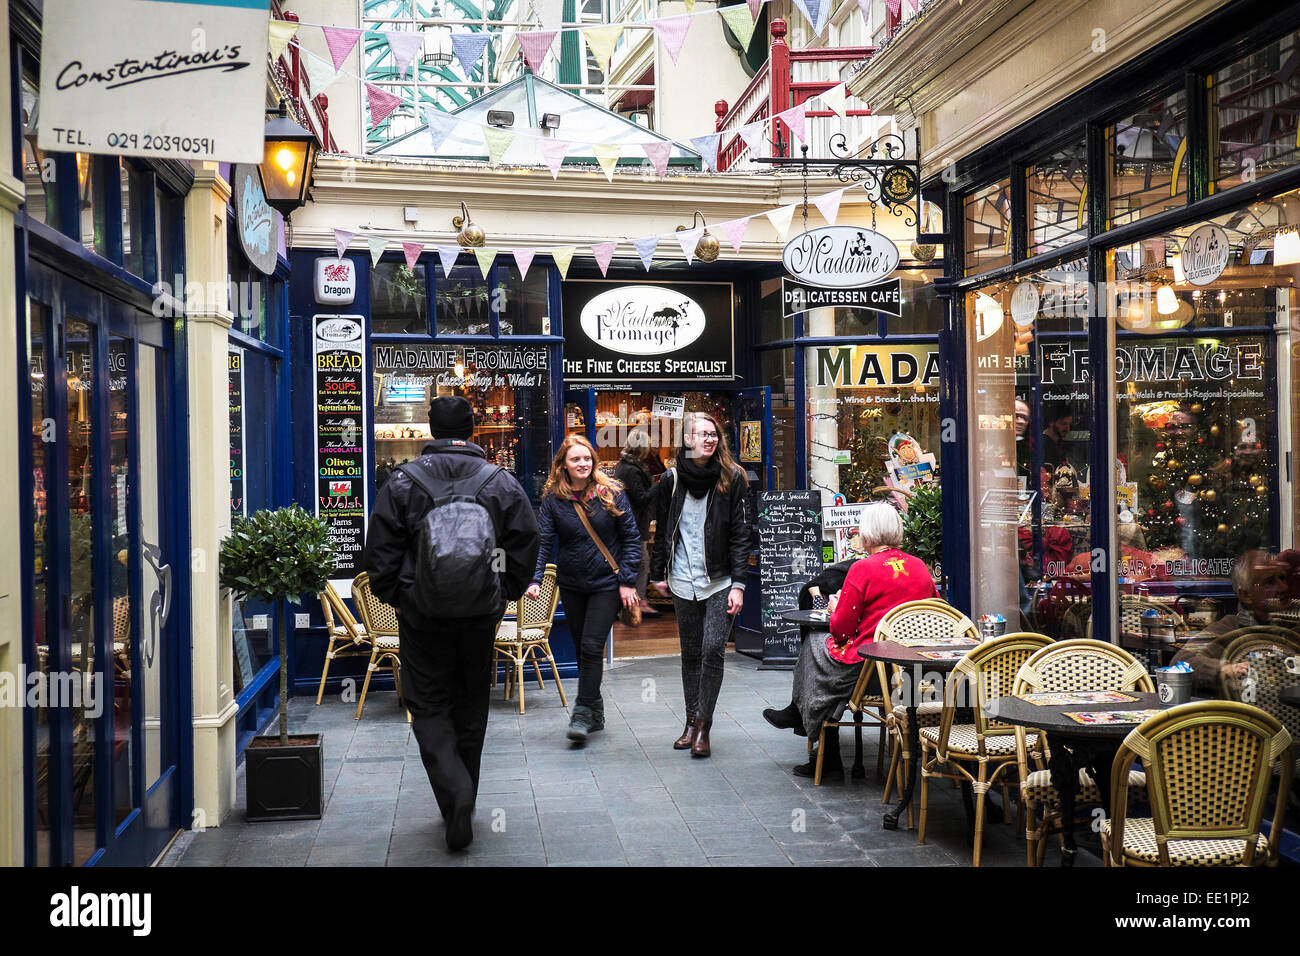 Shoppers in Castle Arcade in Cardiff. - Stock Image